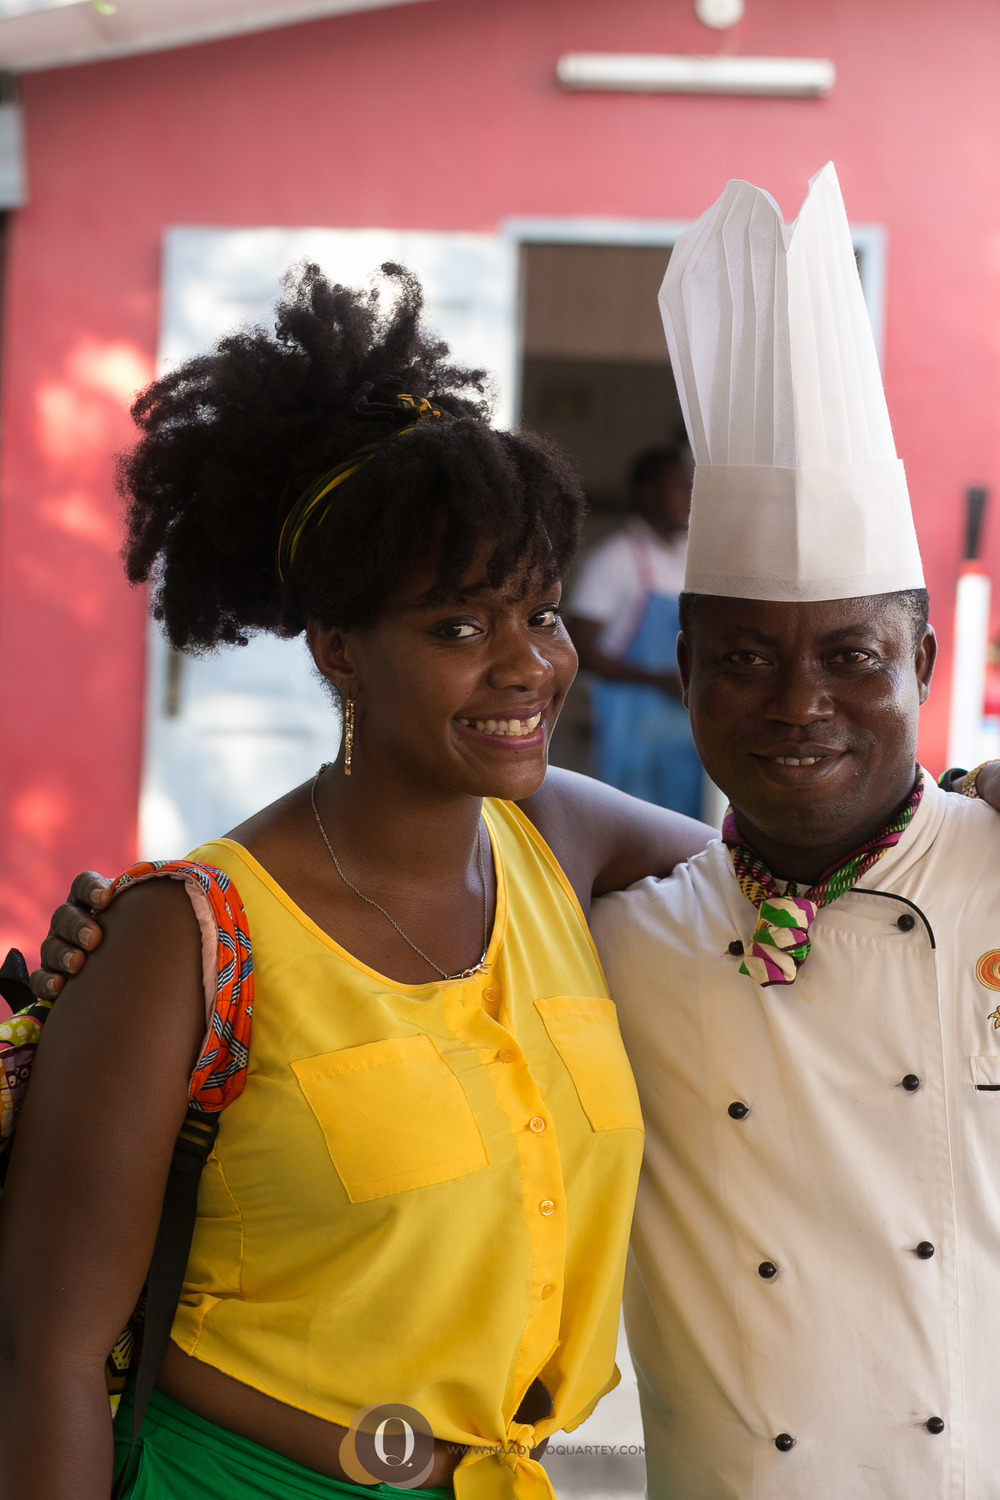 Airport View Hotel chef with a Ghanaian food enthusiast.